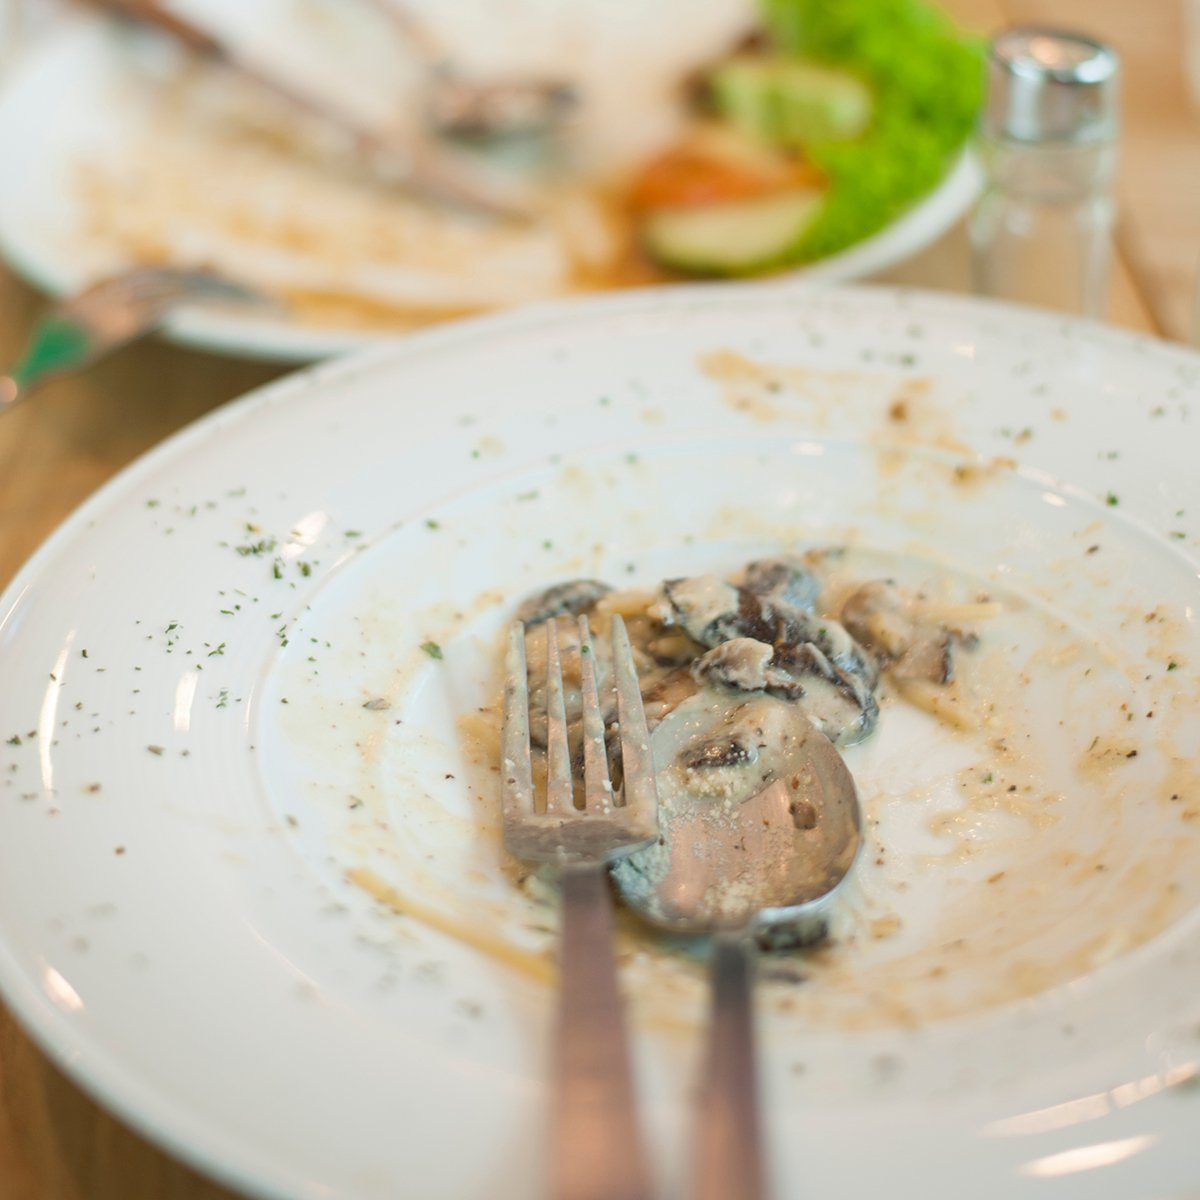 Some people had a good meal and almost finished up everything on the dining table in a cafe.